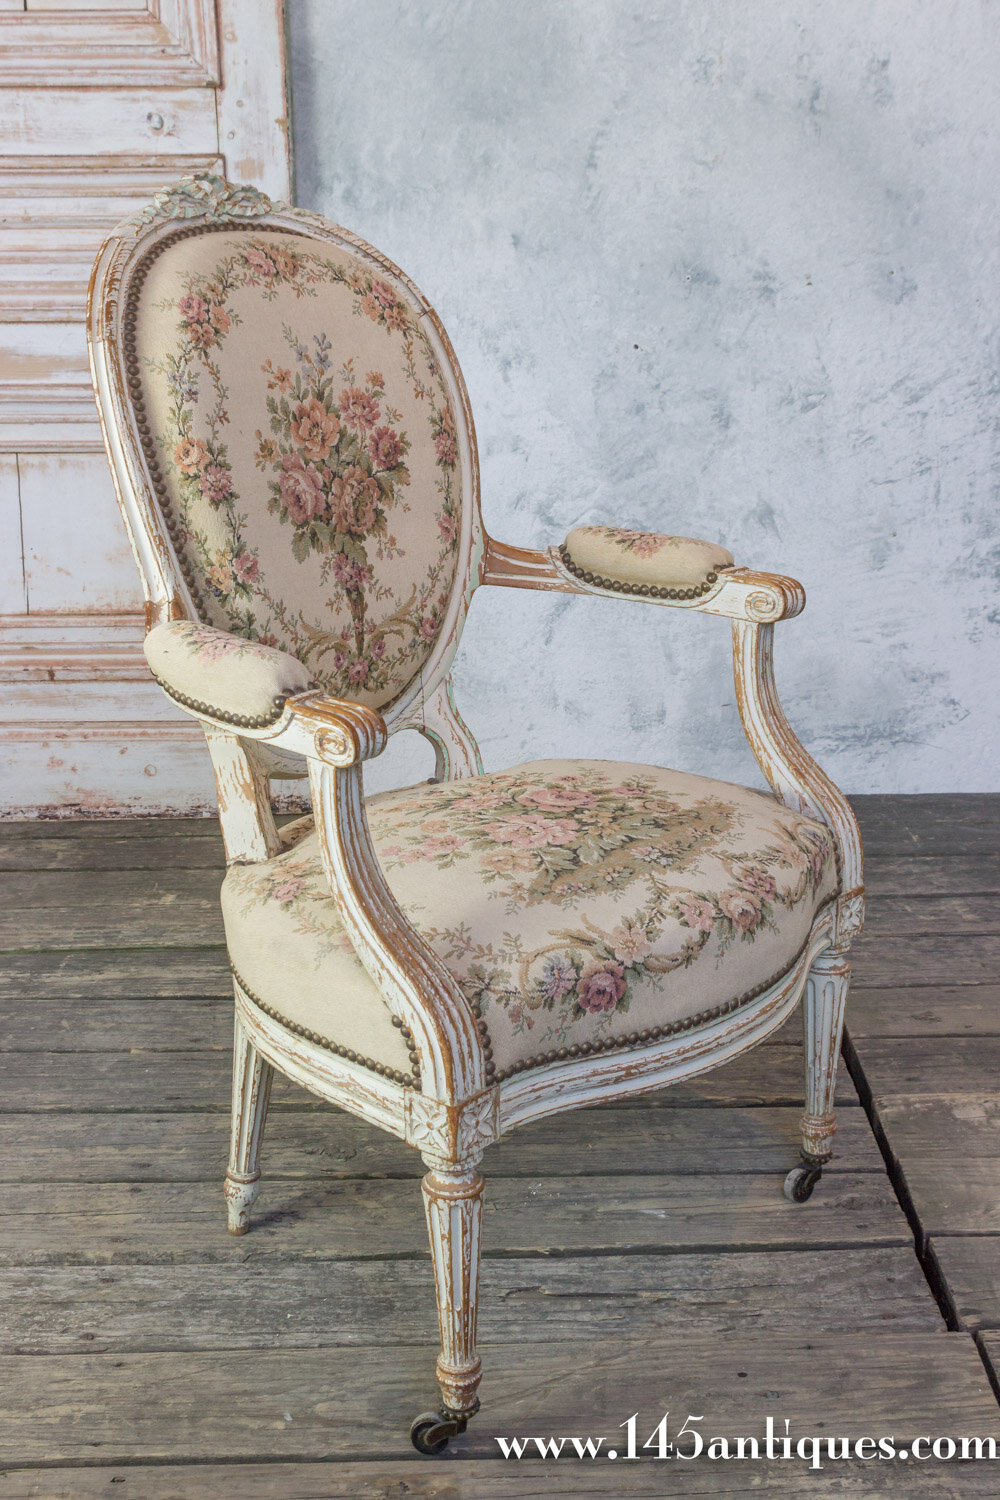 Delicieux Pair Of French 19th Century Louis XVI Style Armchairs In Petit Point Fabric